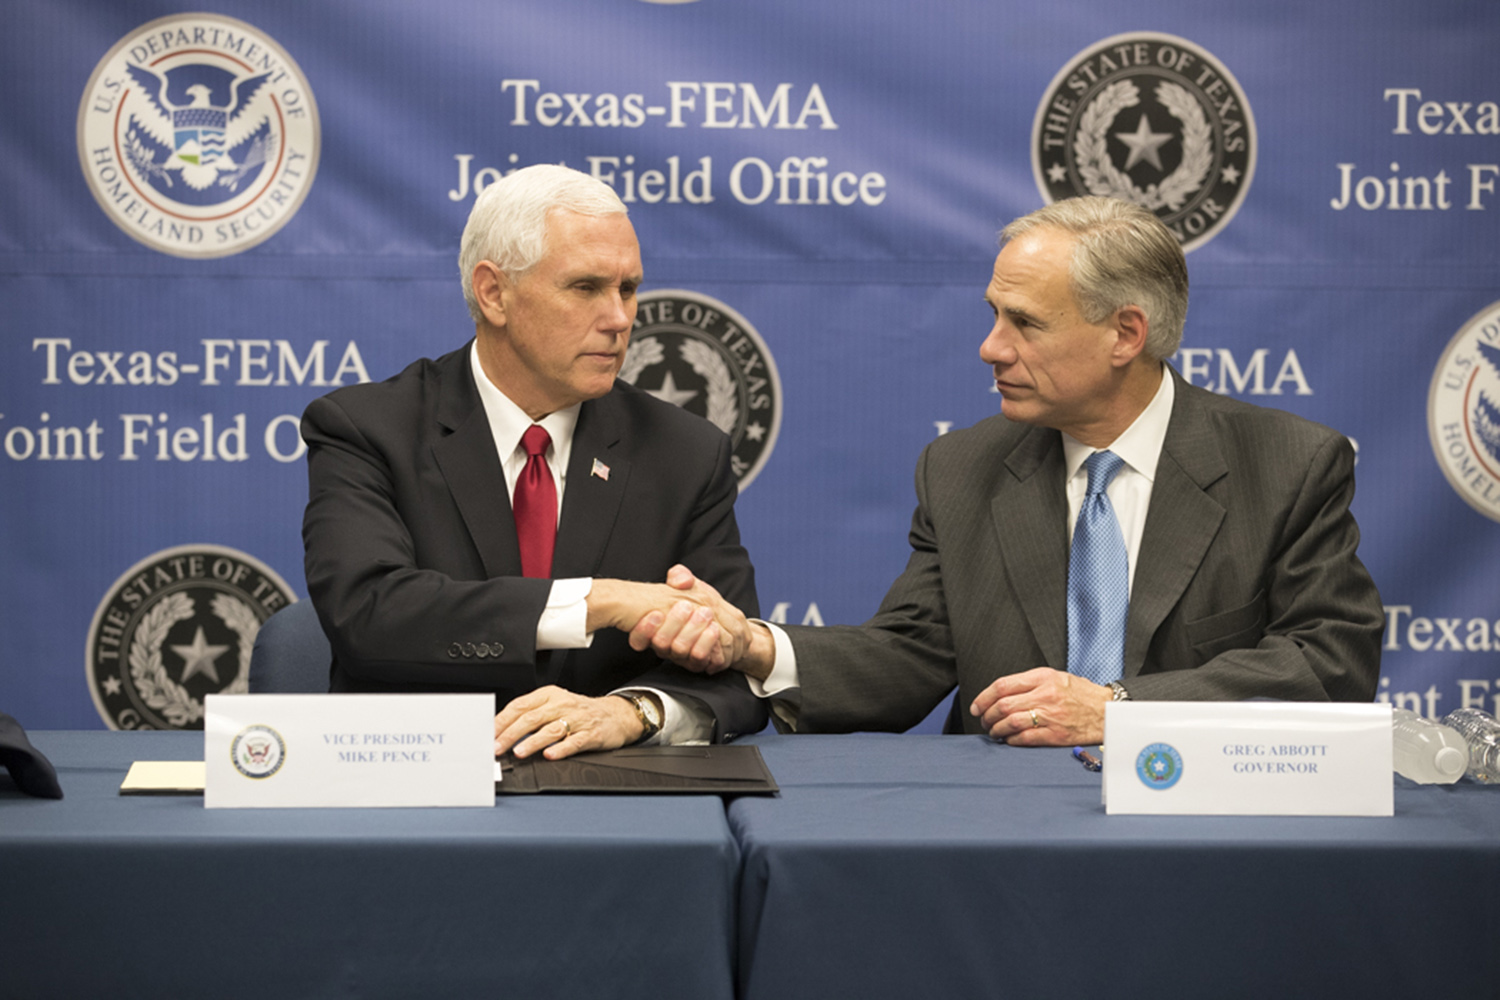 Vice President Mike Pence (left) and Gov. Greg Abbott at a briefing on post-Harvey recovery efforts at the Texas - FEMA Joint Field Office on Nov. 15, 2017.